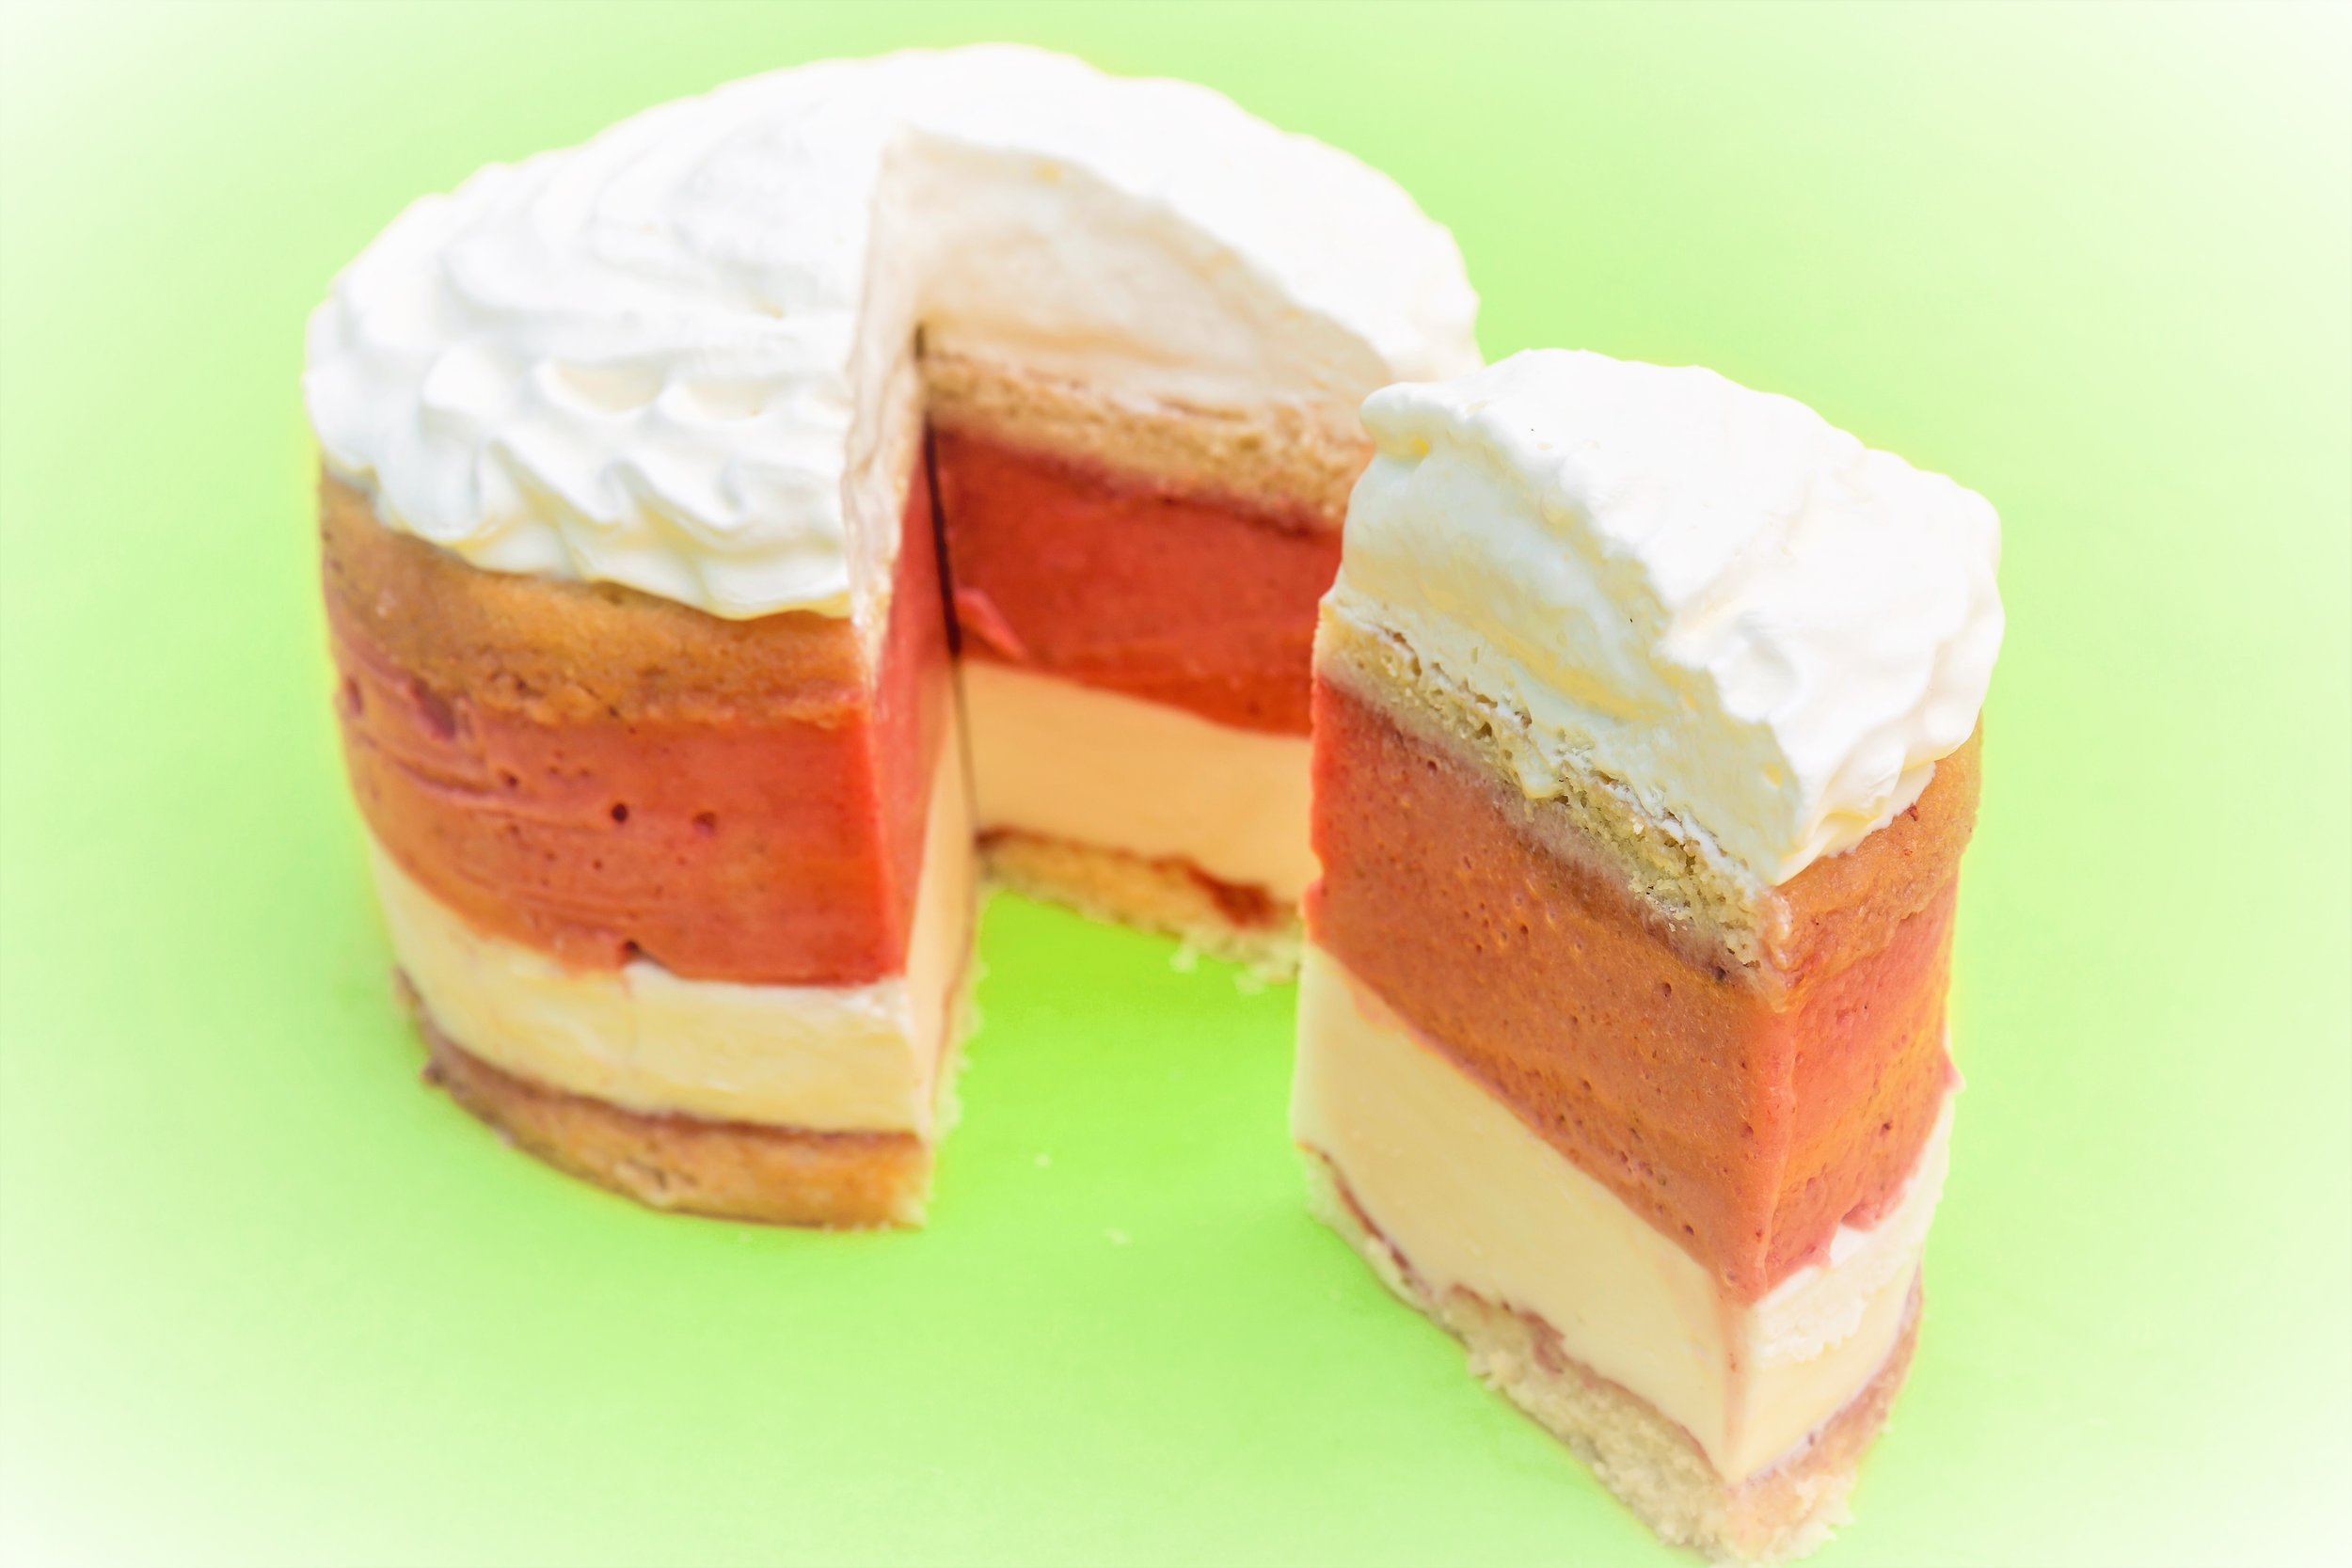 We also offer a rotating selection of seasonal gelato cakes. Our current selection is Strawberry Shortcake.This cake is made with yellow cake soaked in strawberry sauce, a layer of Tahitian Vanilla gelato, another layer of yellow cake soaked in strawberry sauce, a layer of Strawberry Sorbetto, and a layer of fresh whipped cream.